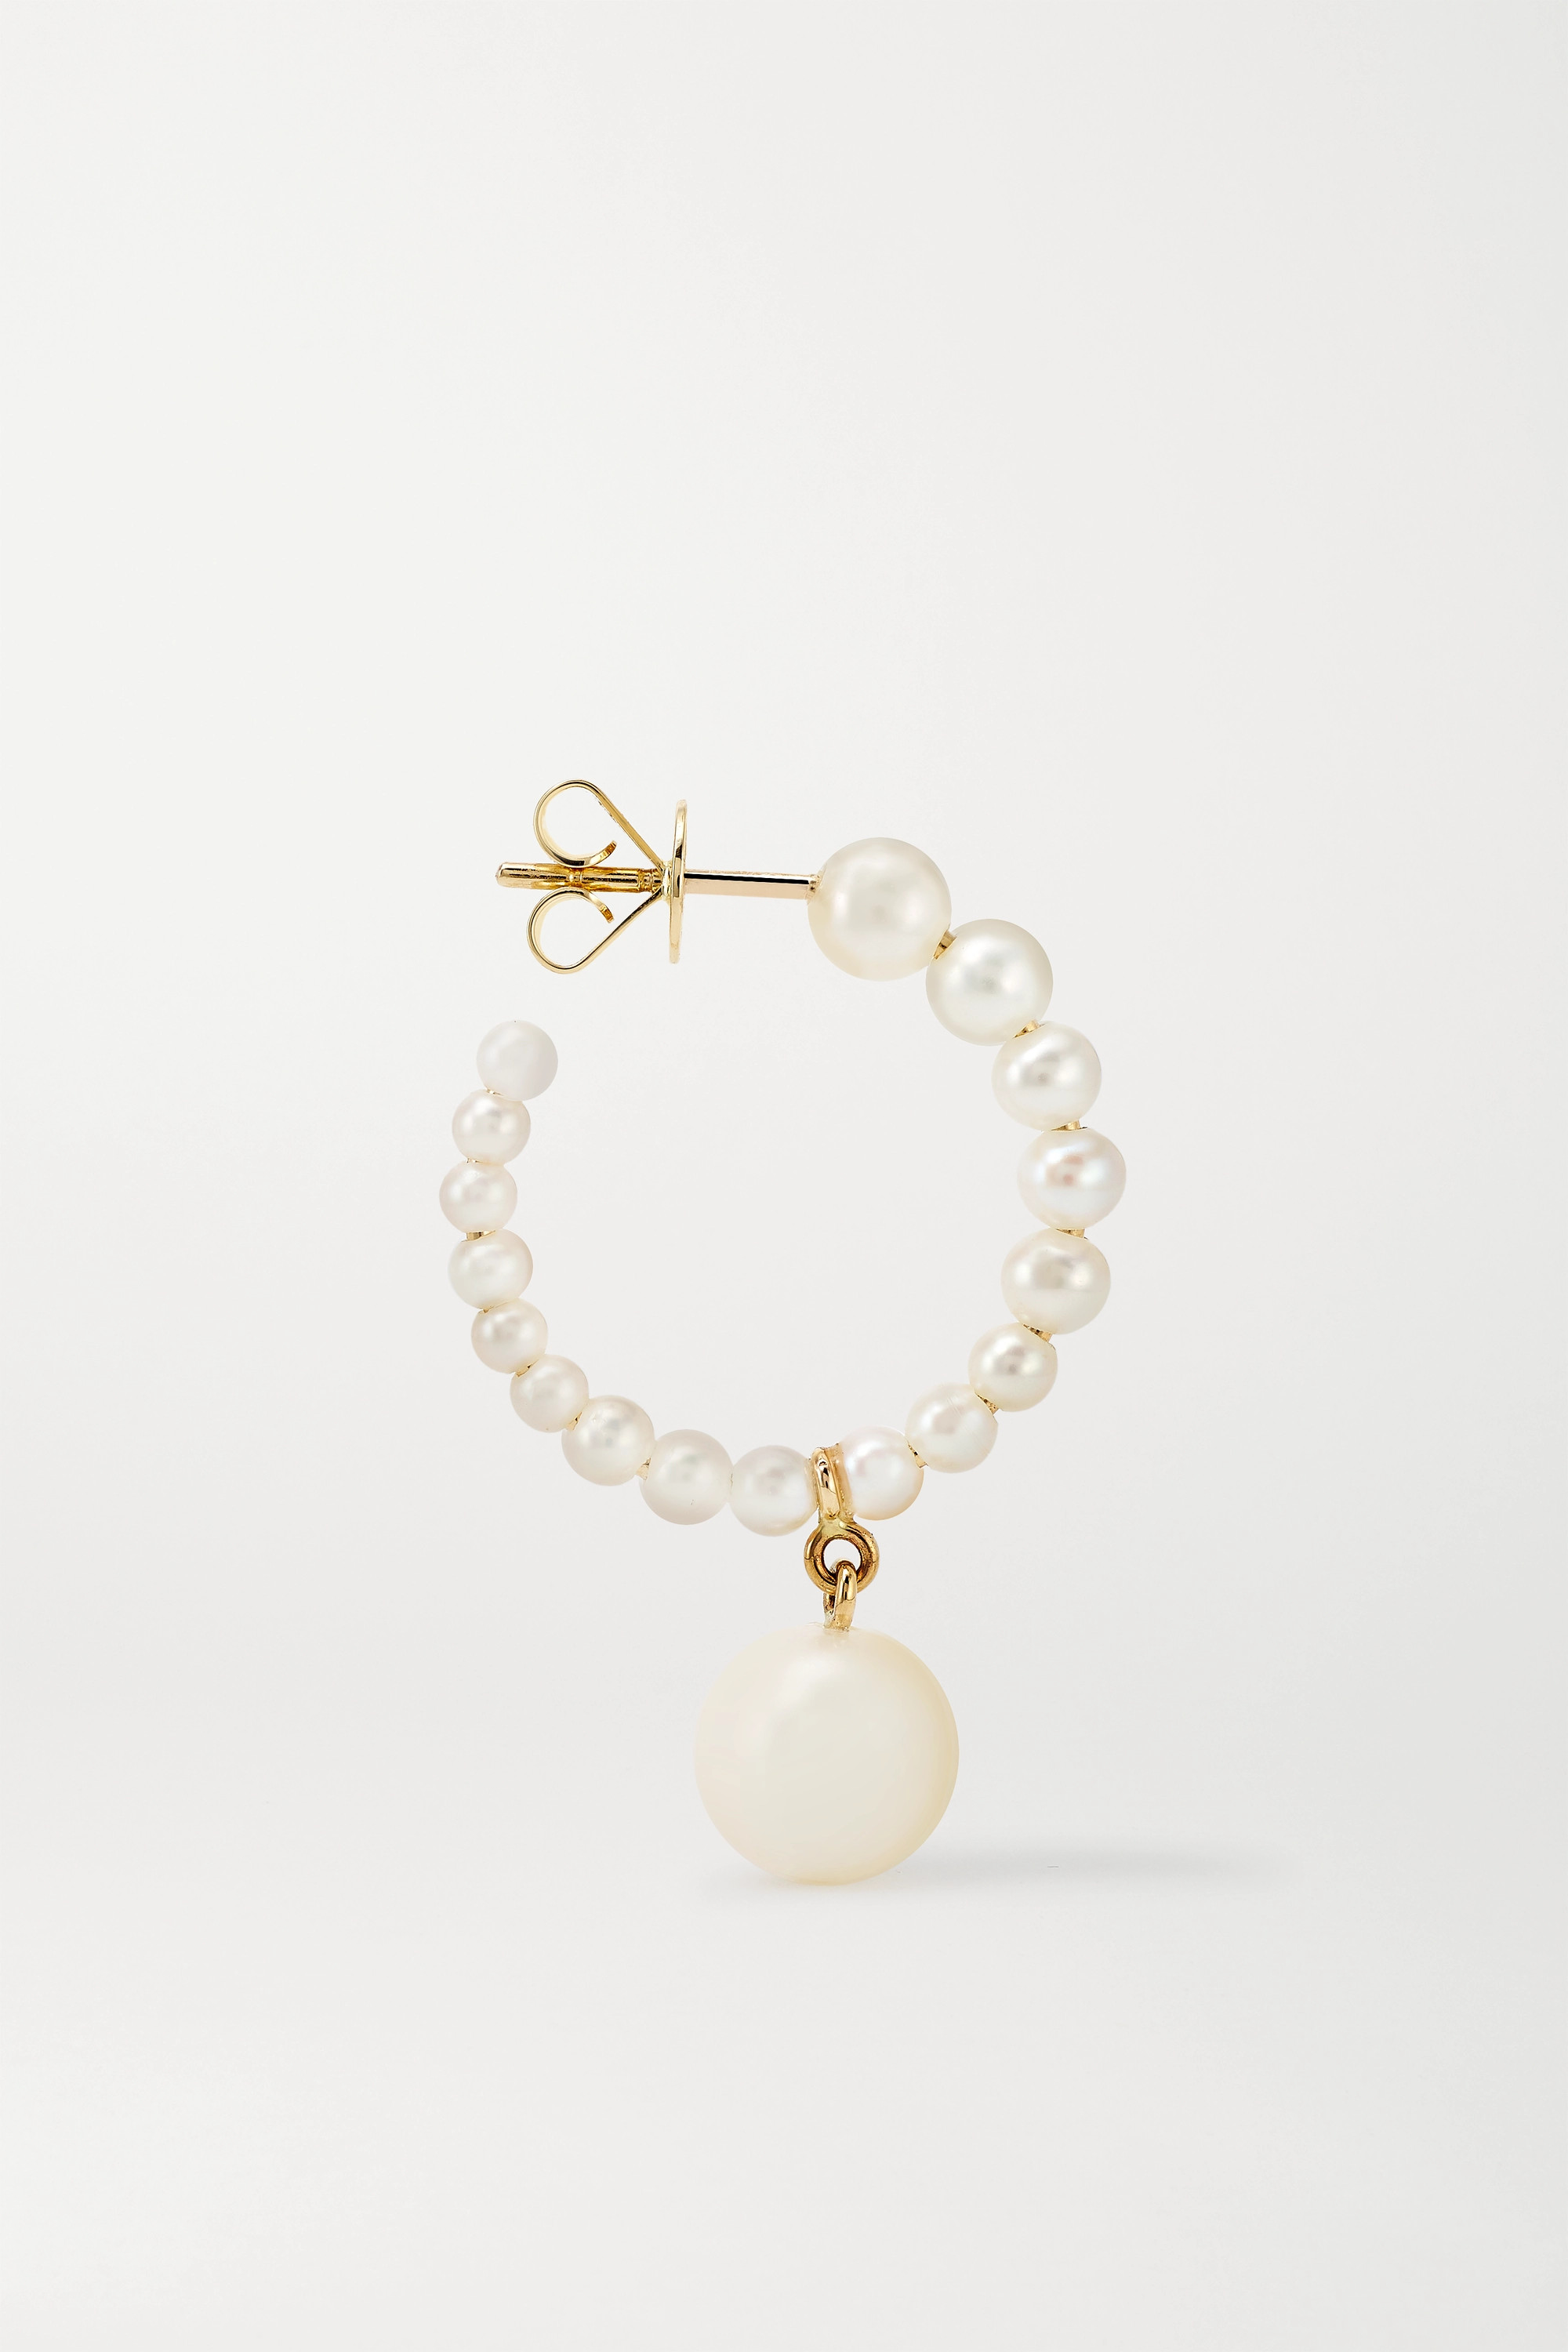 Sophie Bille Brahe Boucle Marco Perle 14-karat gold pearl hoop earrings